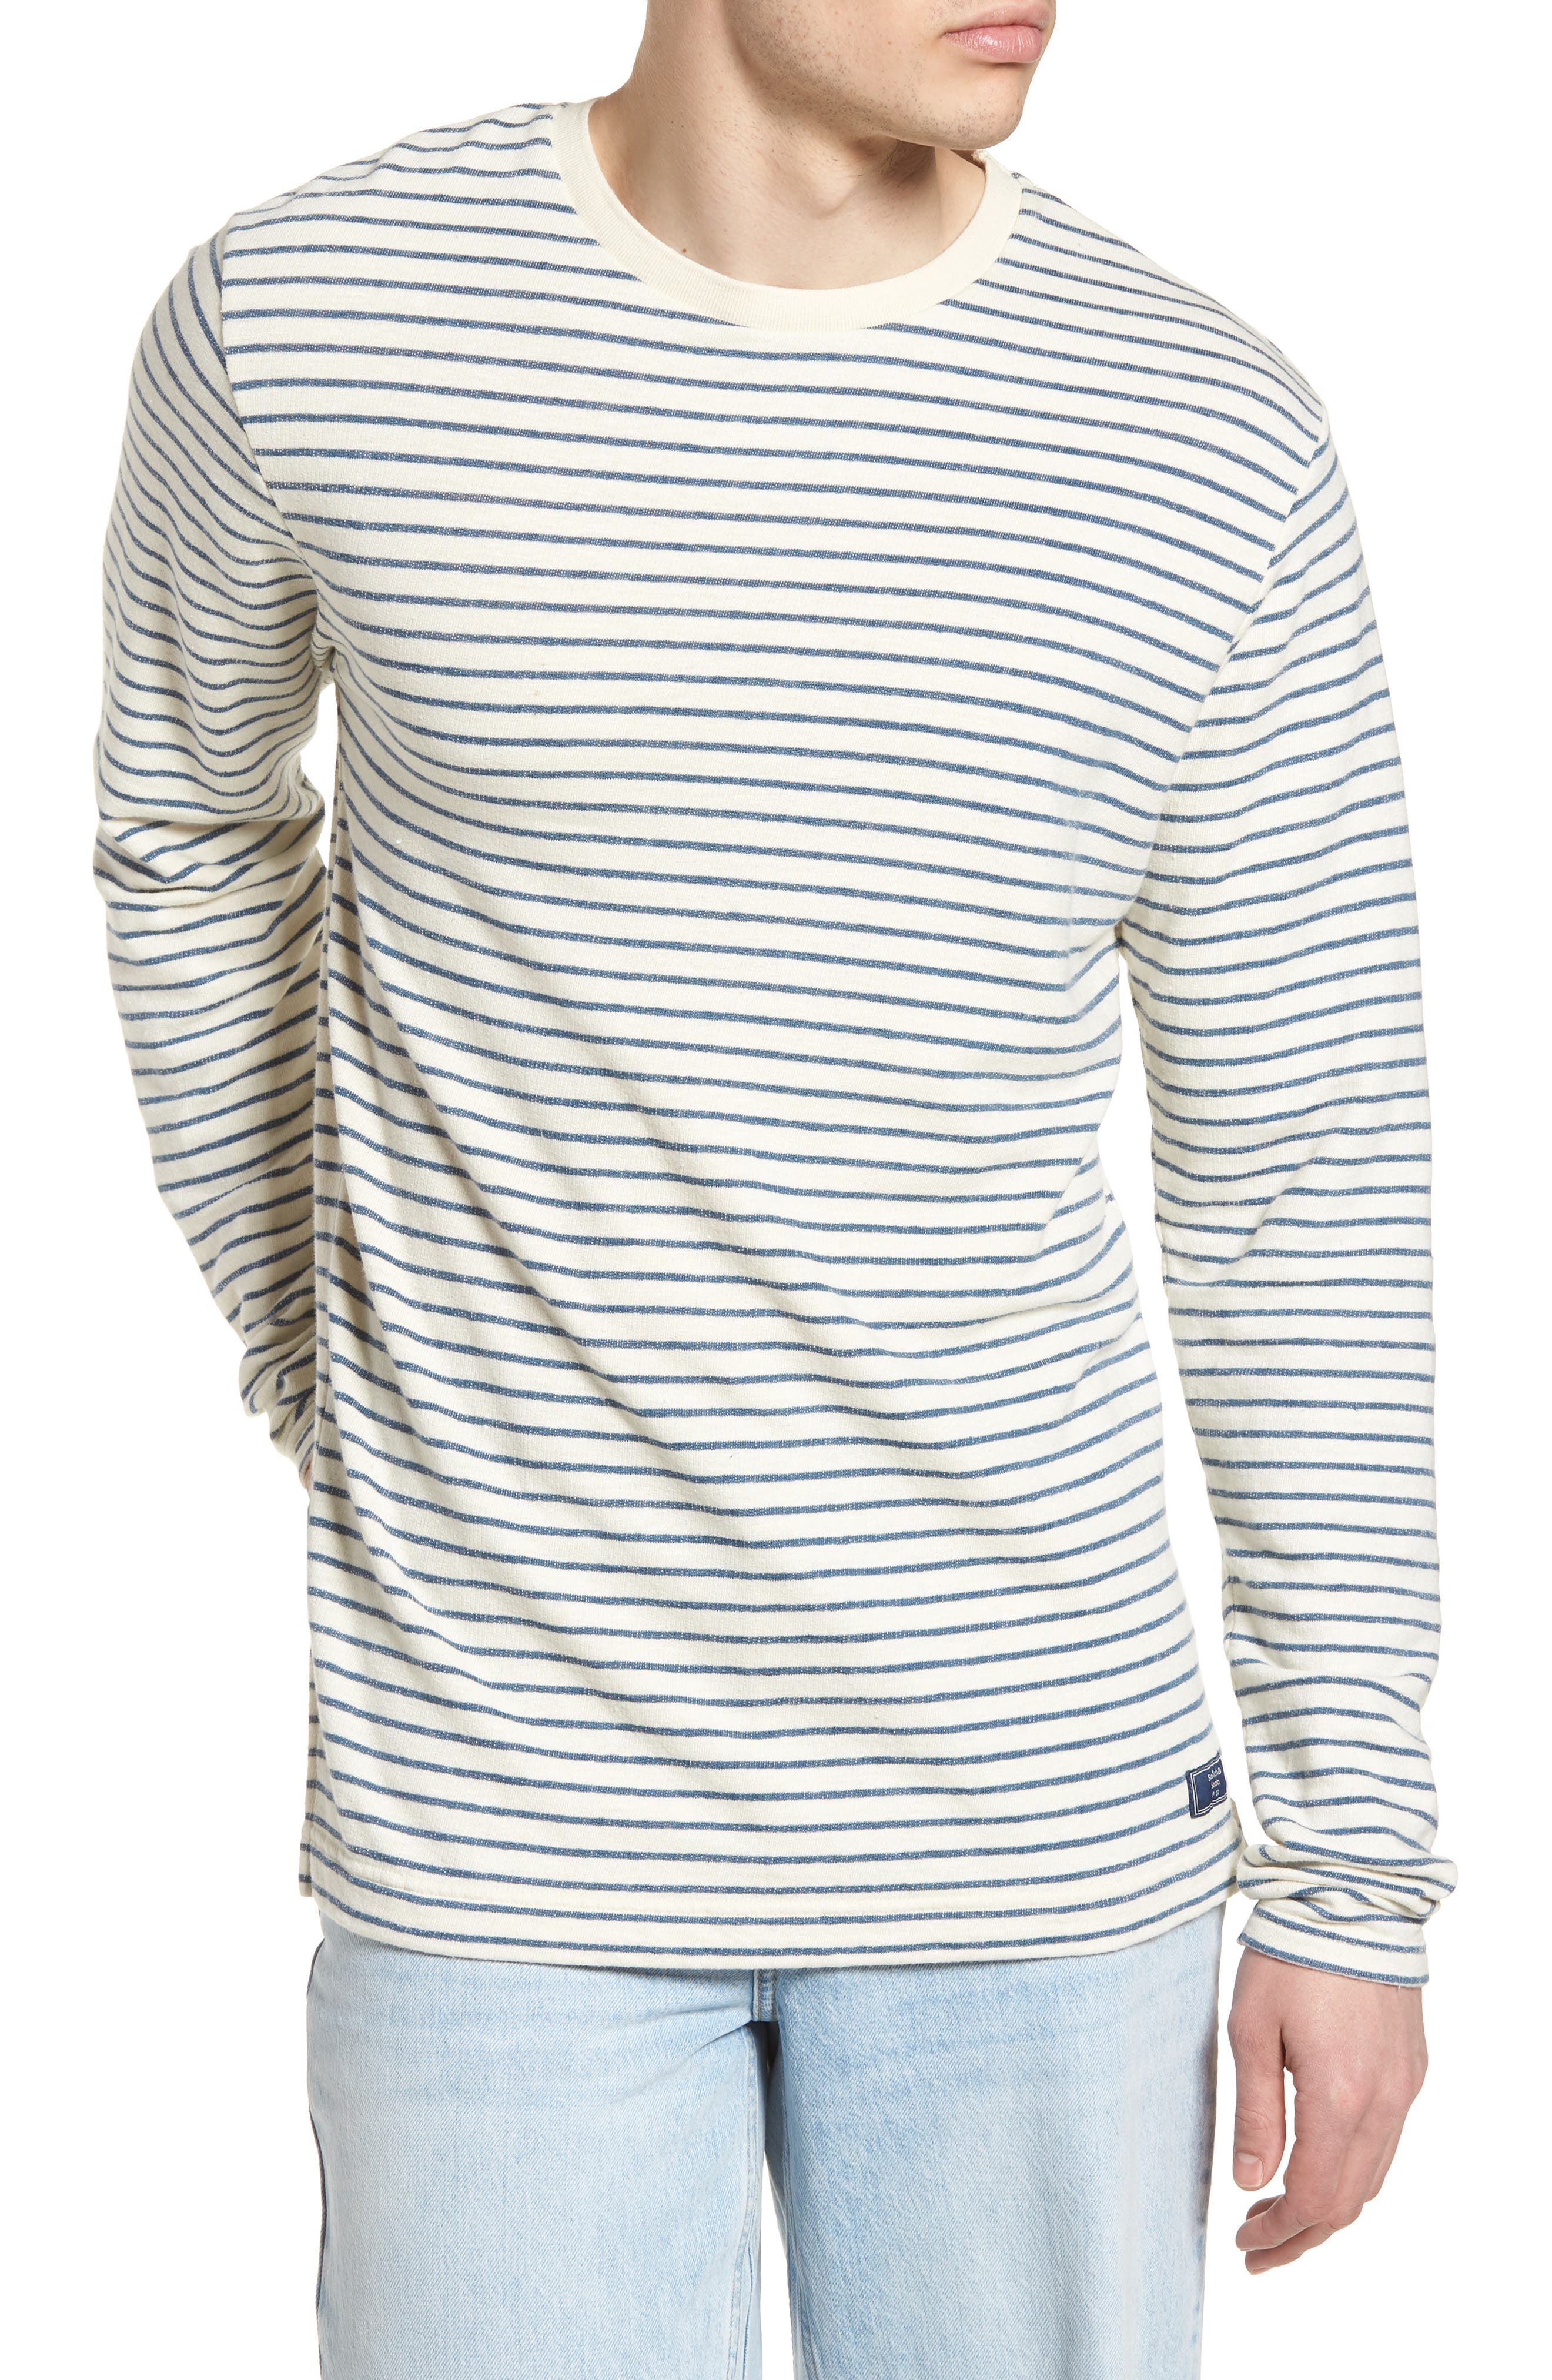 Stripe Crewneck Sweater,                         Main,                         color, 250